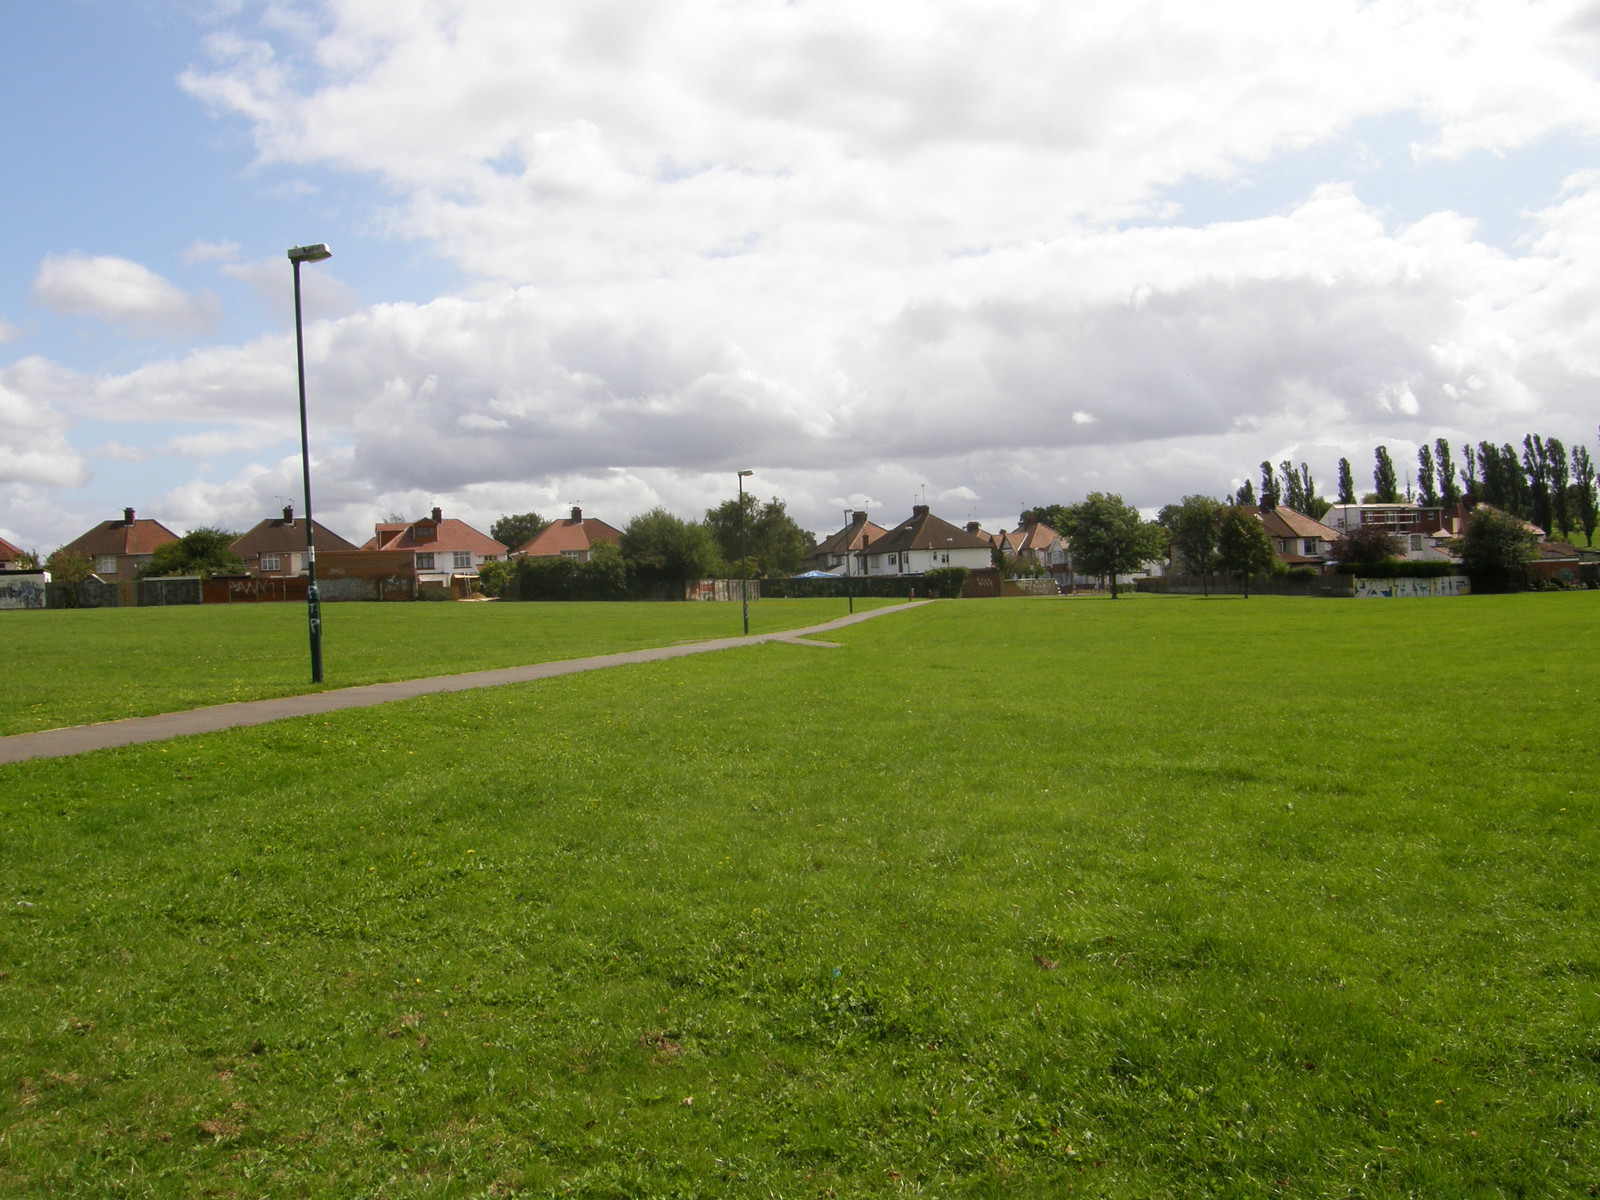 One Tree Hill Recreation Ground